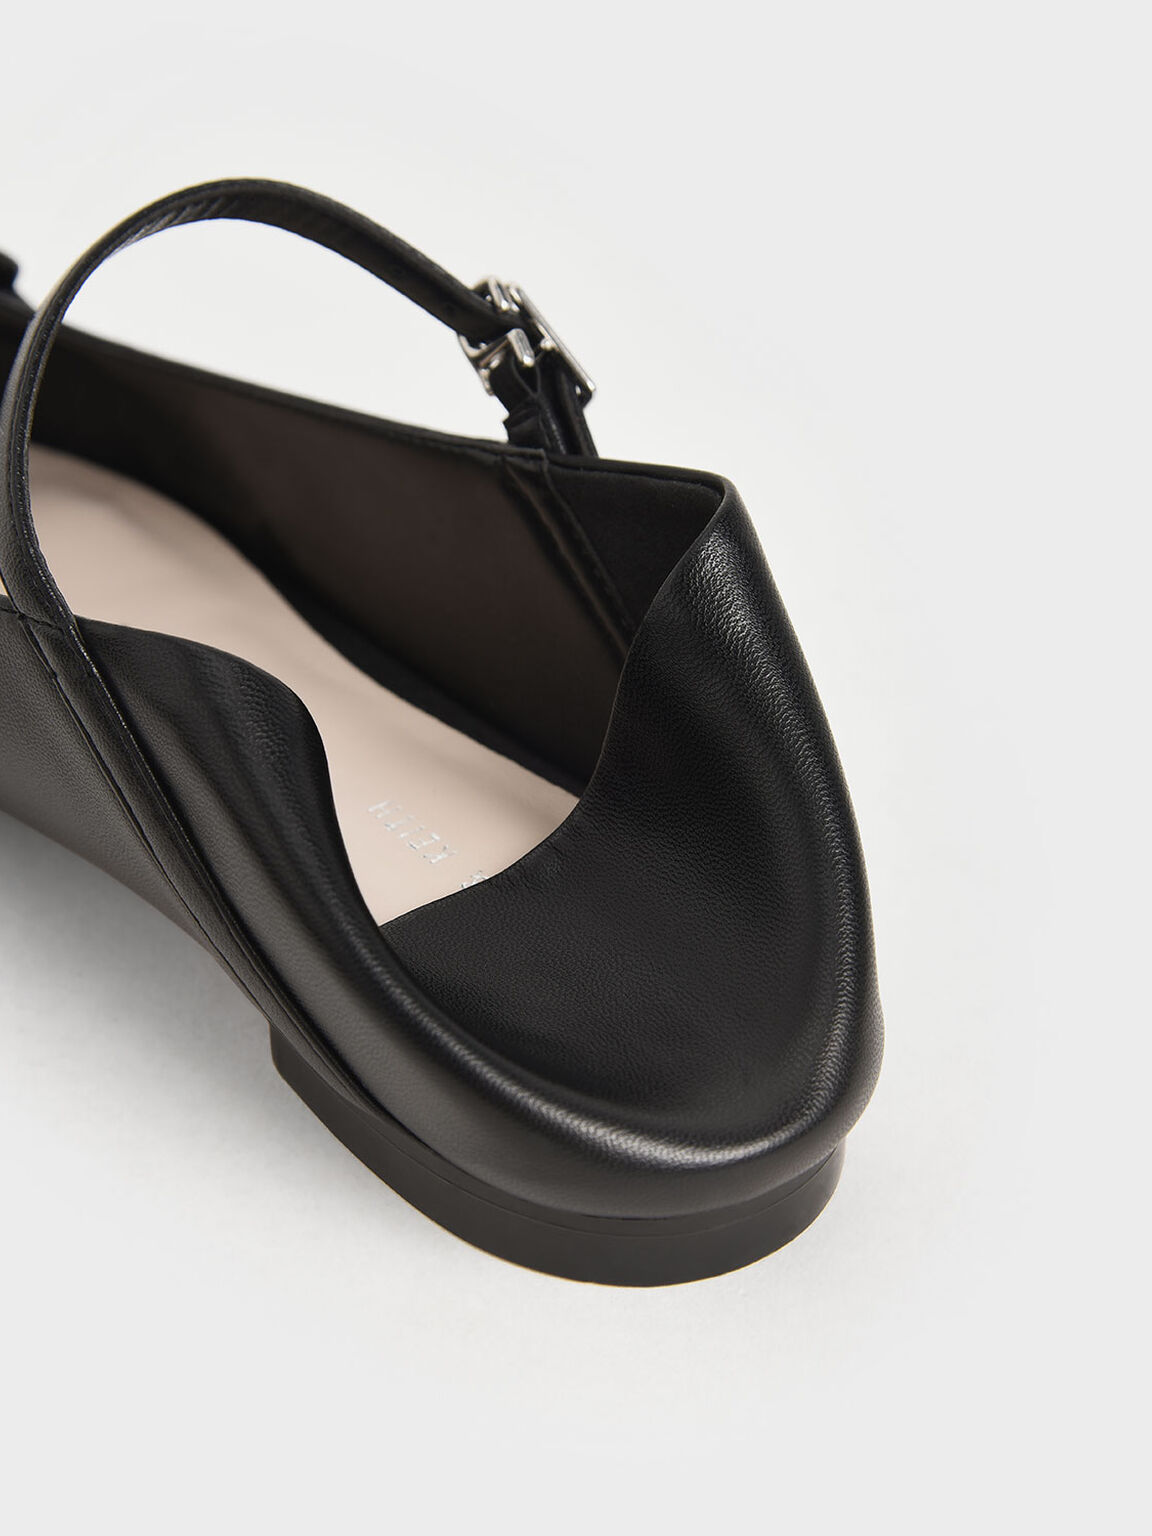 Chain Link Mary Jane Flats, Black, hi-res